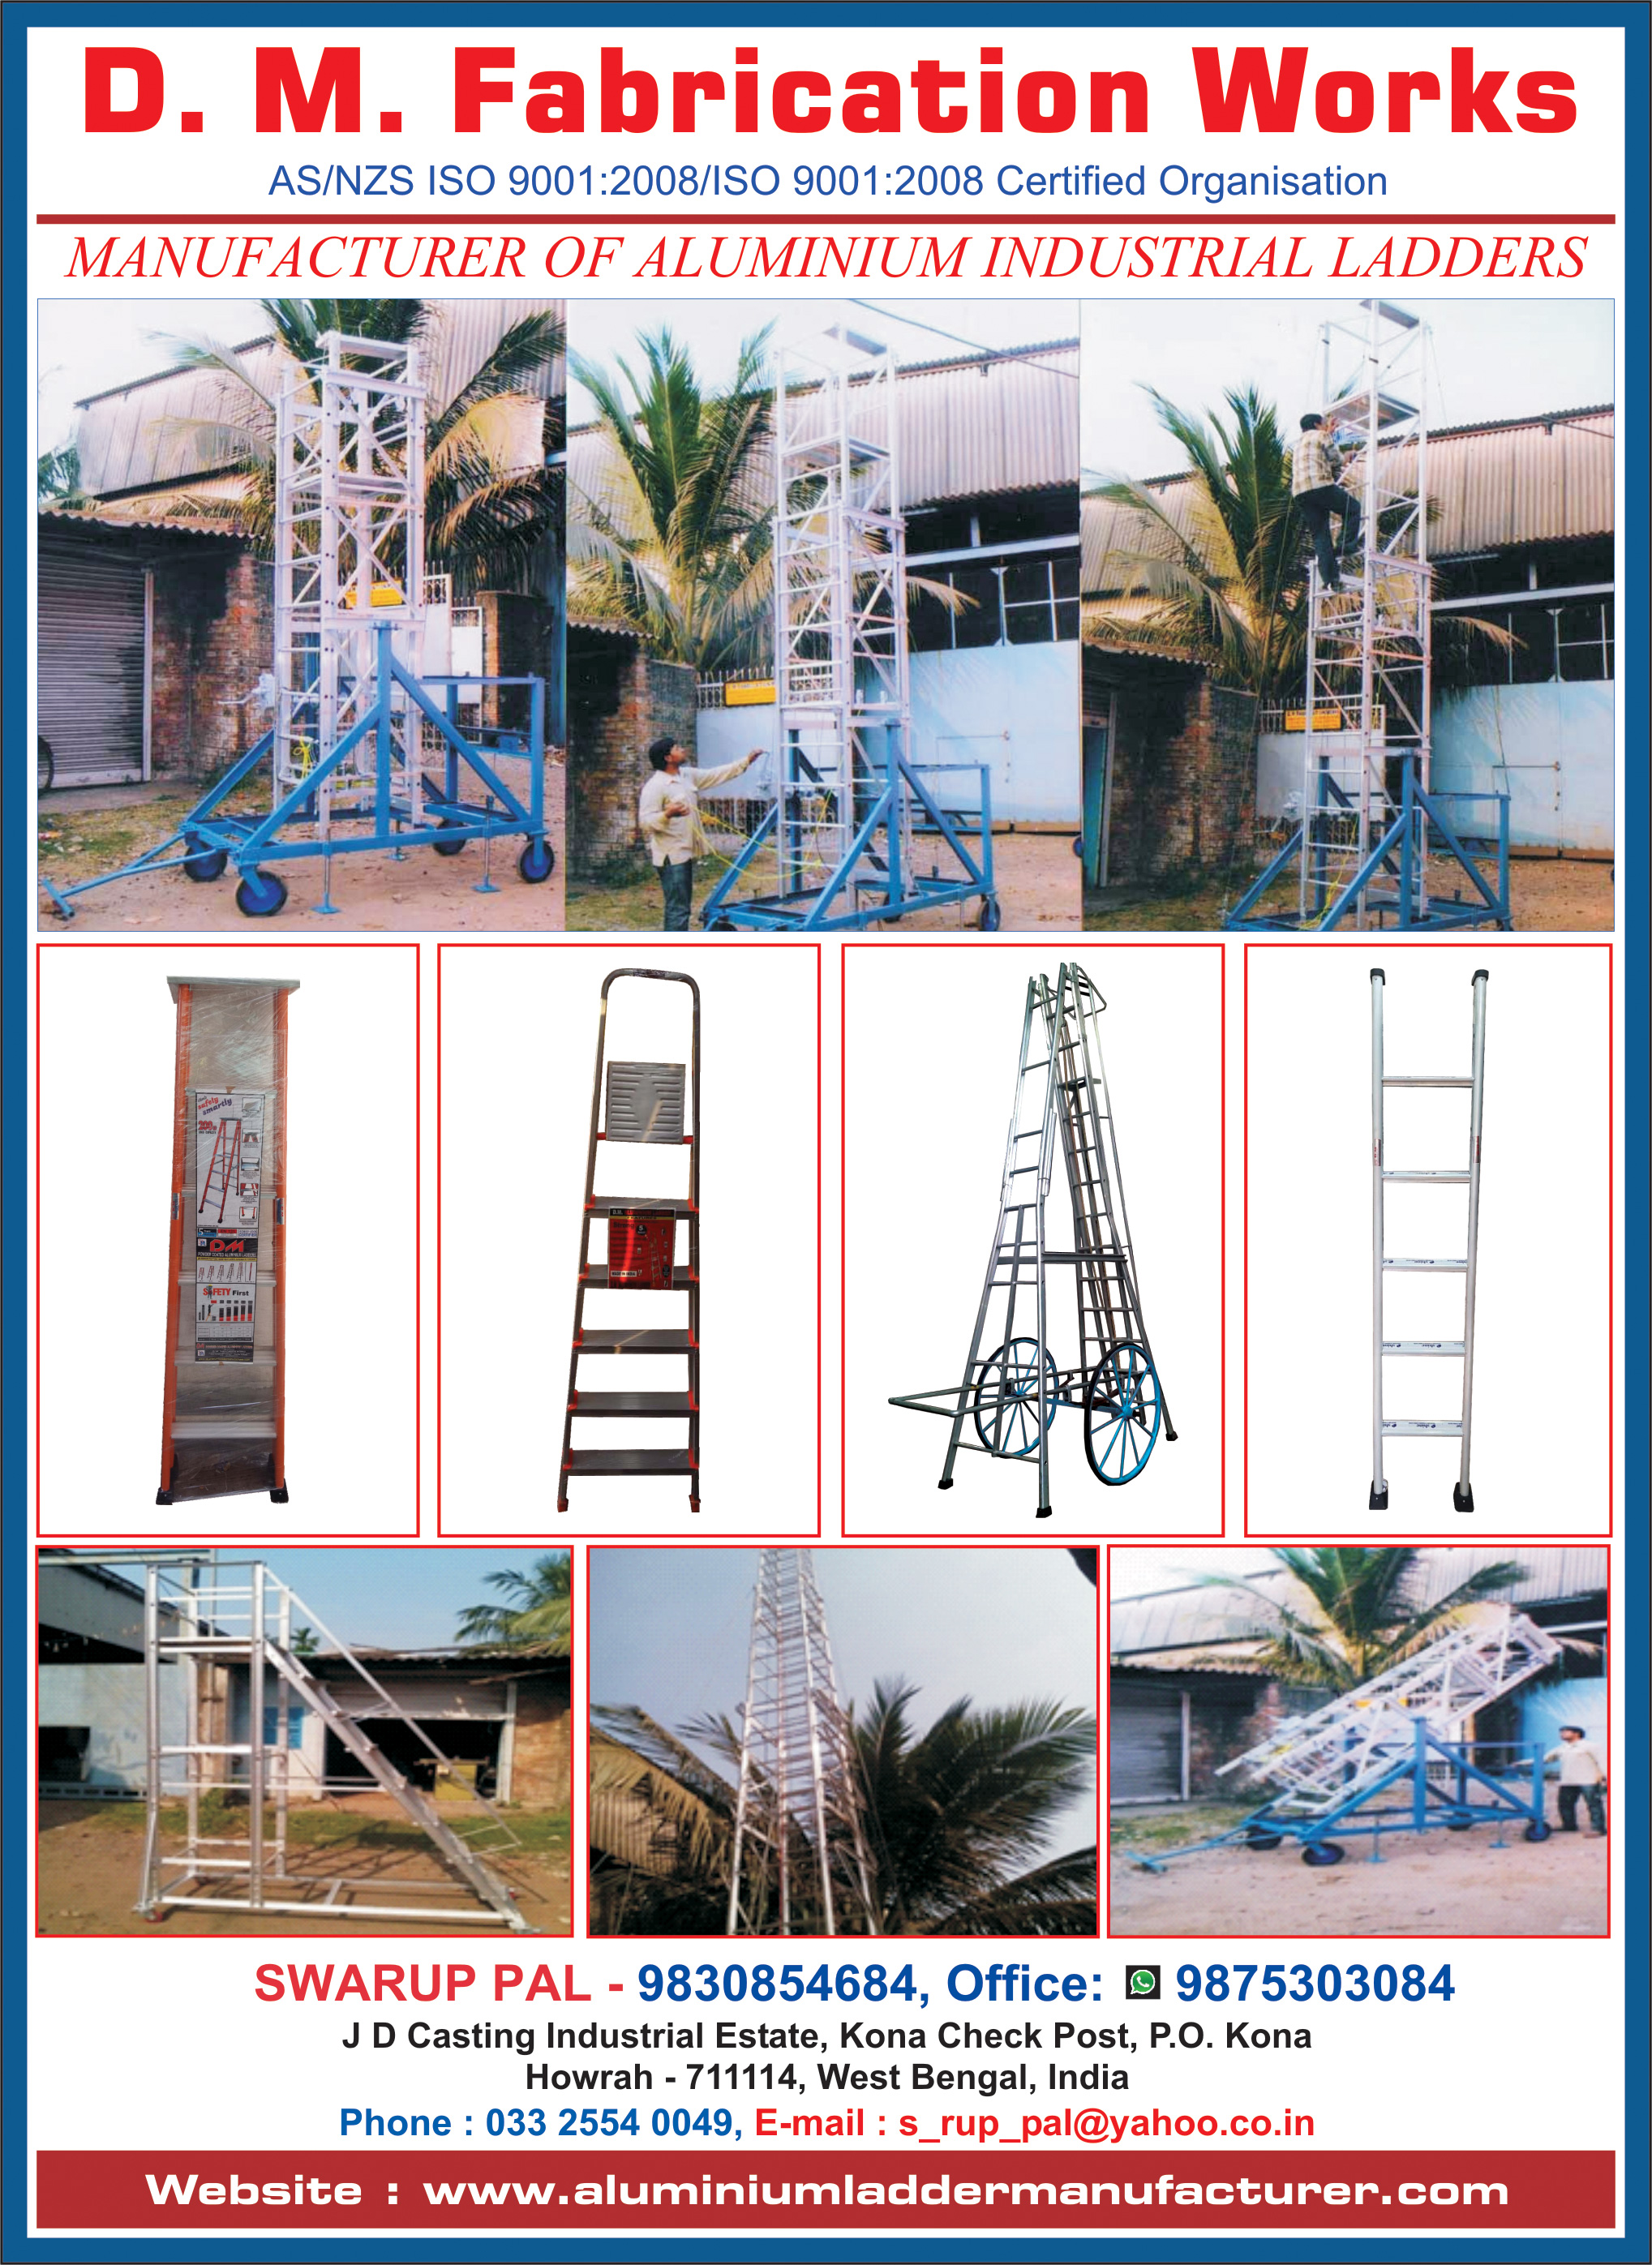 Ladders Aluminium, D M FABRICATION WORKS, Kolkata,  Yellow Pages, Kolkata, West Bengal